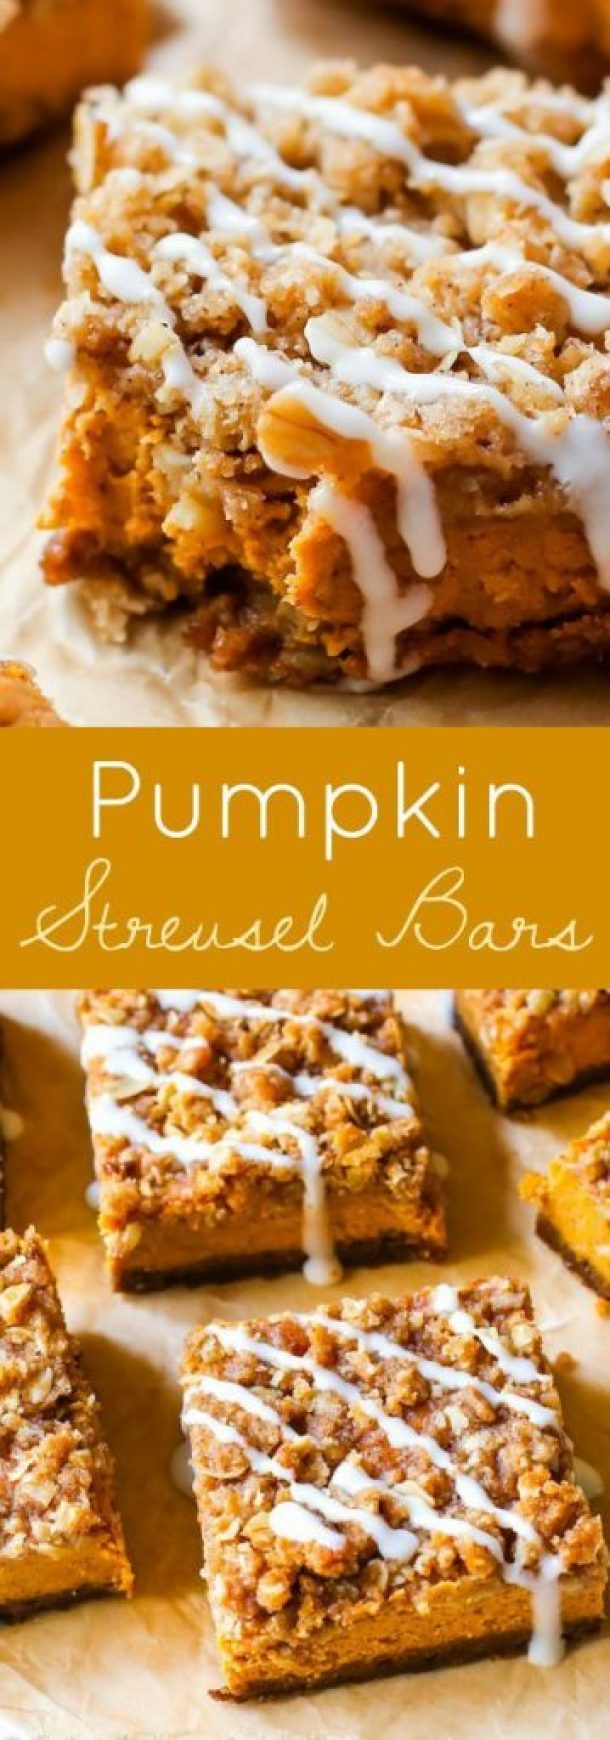 Pumpkin Streusel Bars Recipe | Sally's Baking Addiction